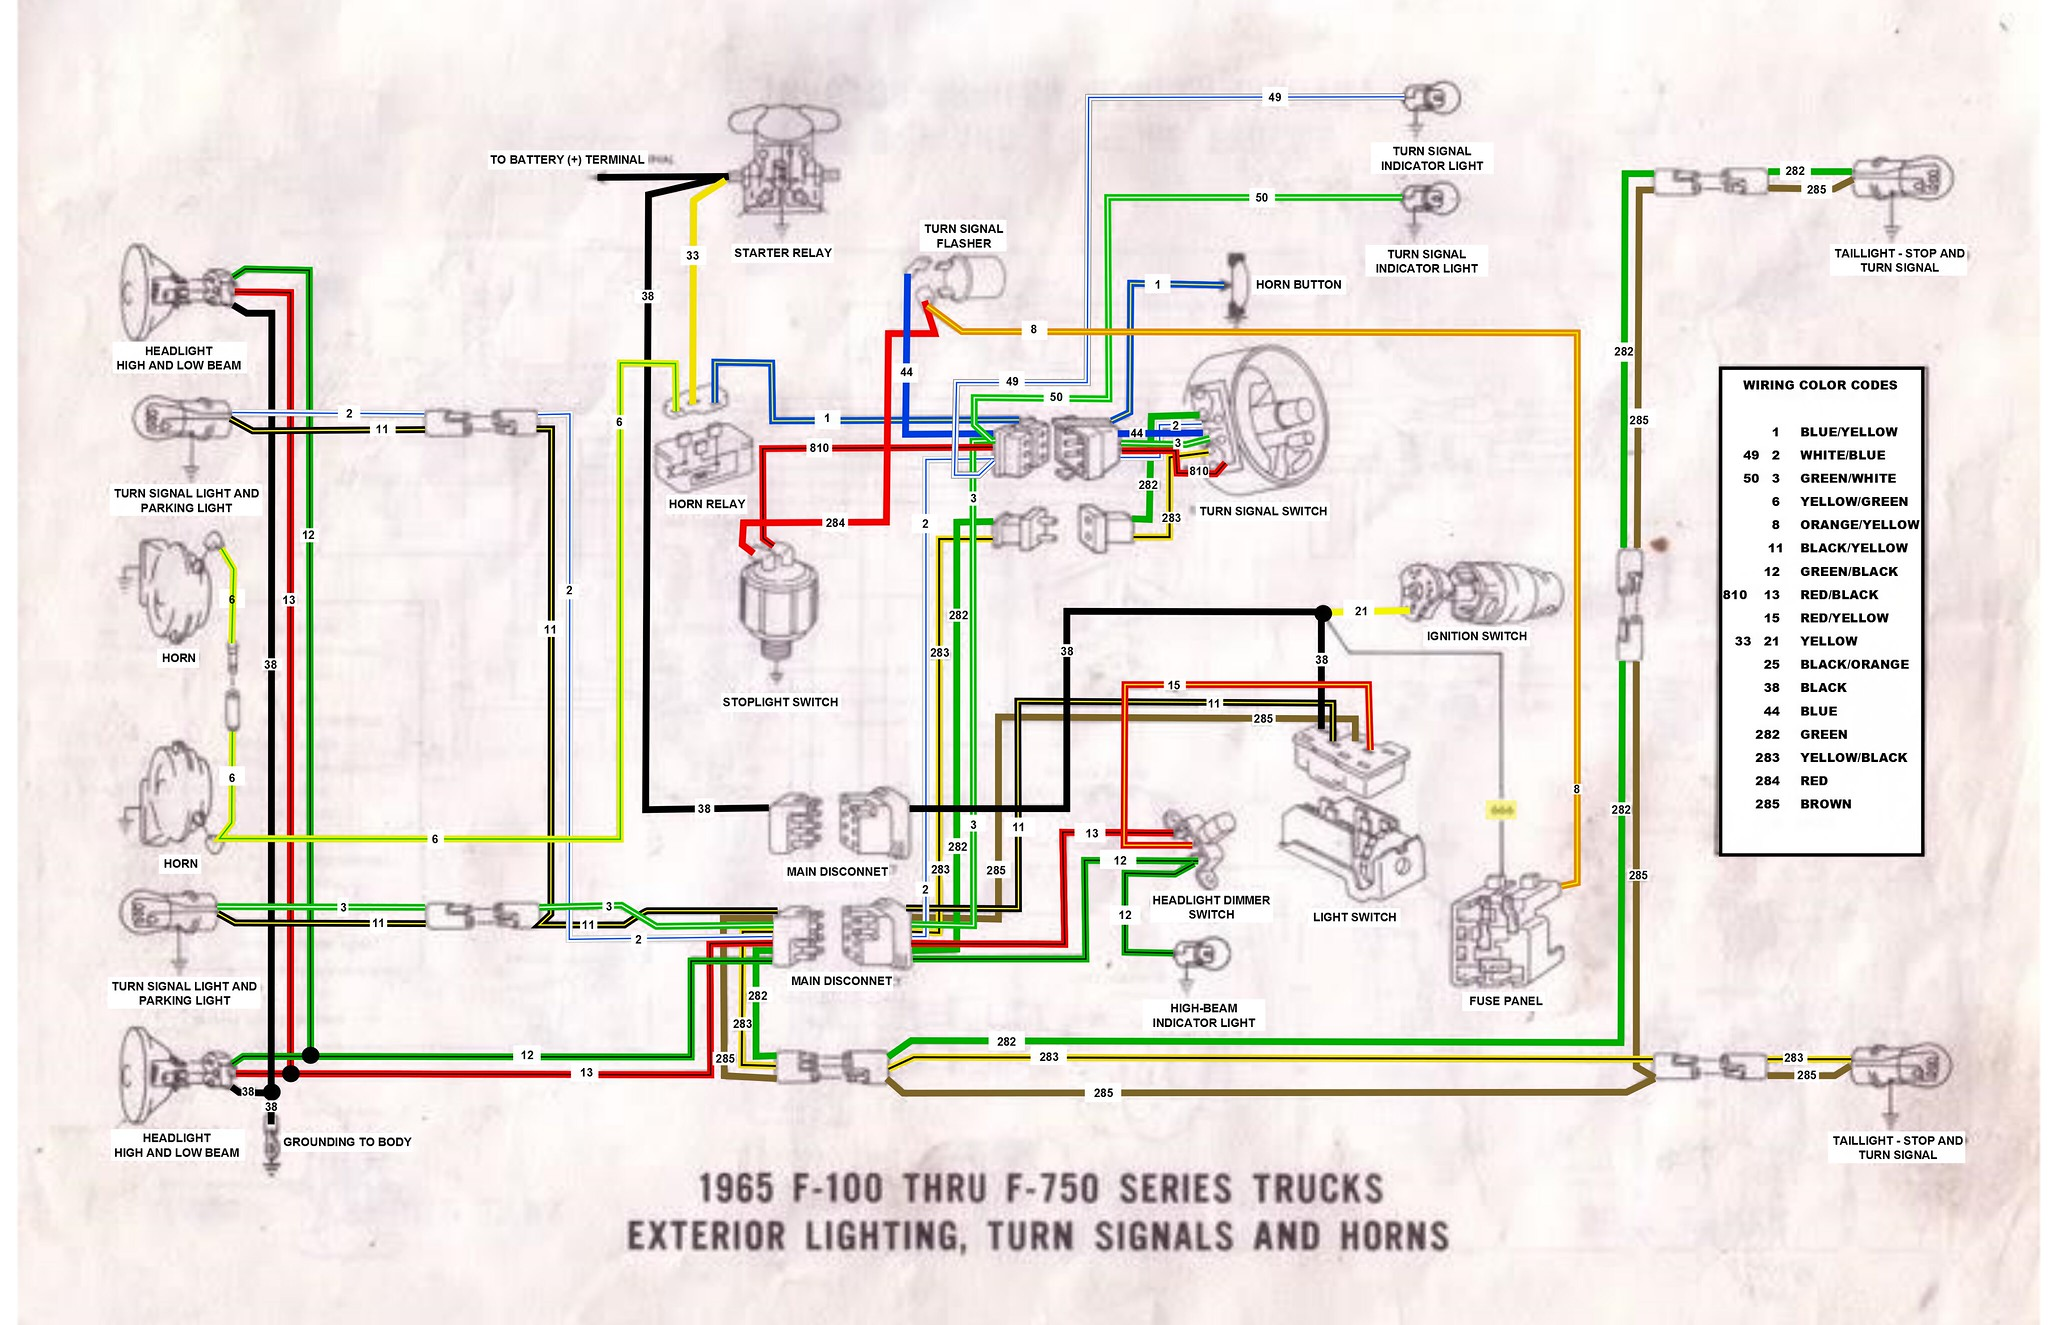 2002 ford f750 wiring diagram for 2 sd 65 f100 thru f750 exterior wiring diagram - ford truck enthusiasts forums